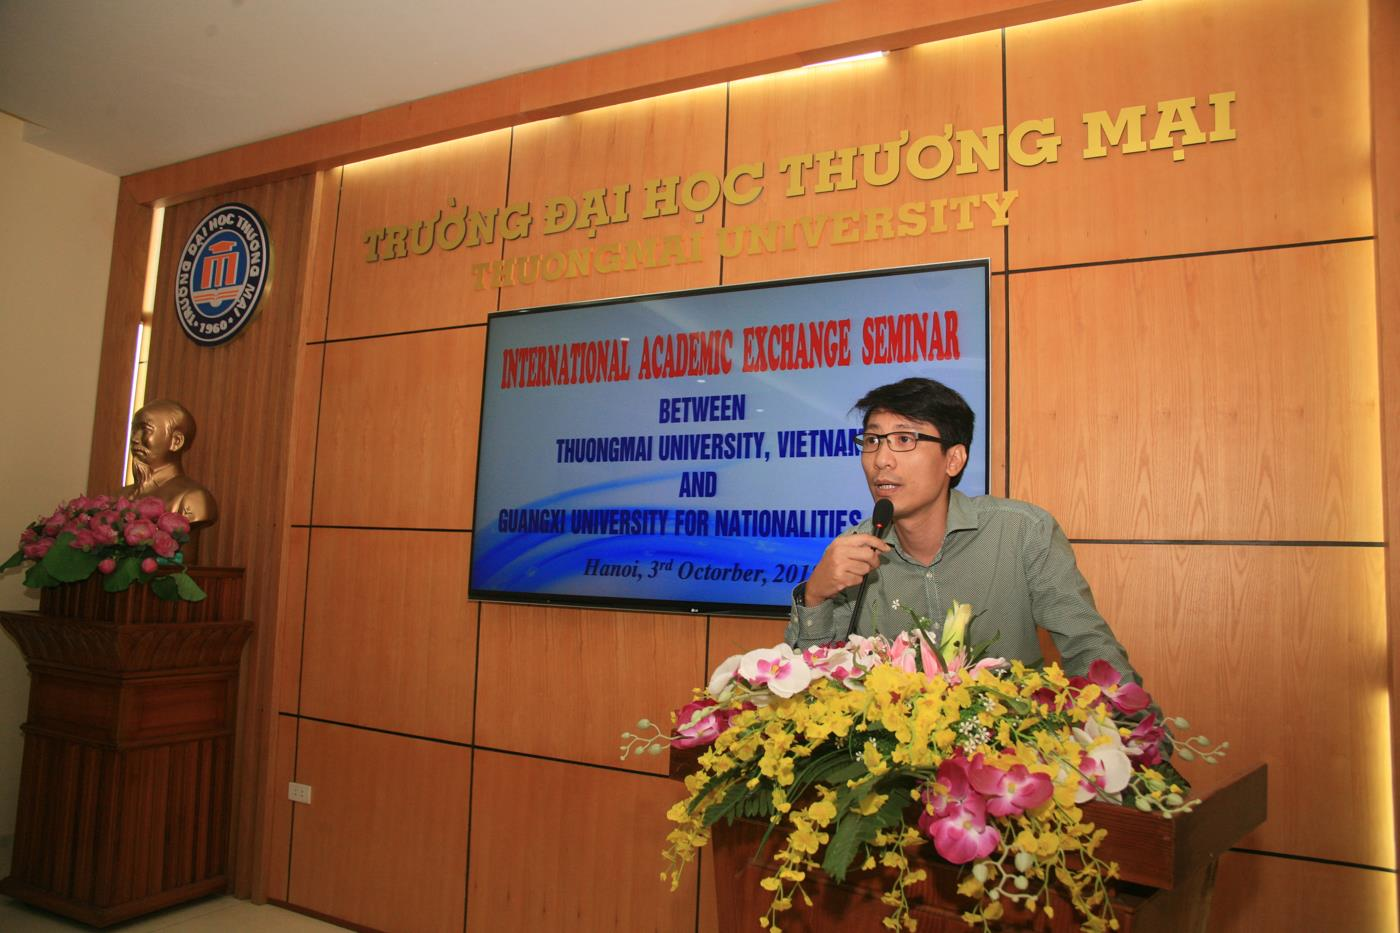 Mr Đào Thế Sơn –Vice head of Department of Foreign Affairs and Communications delivered an opening speech